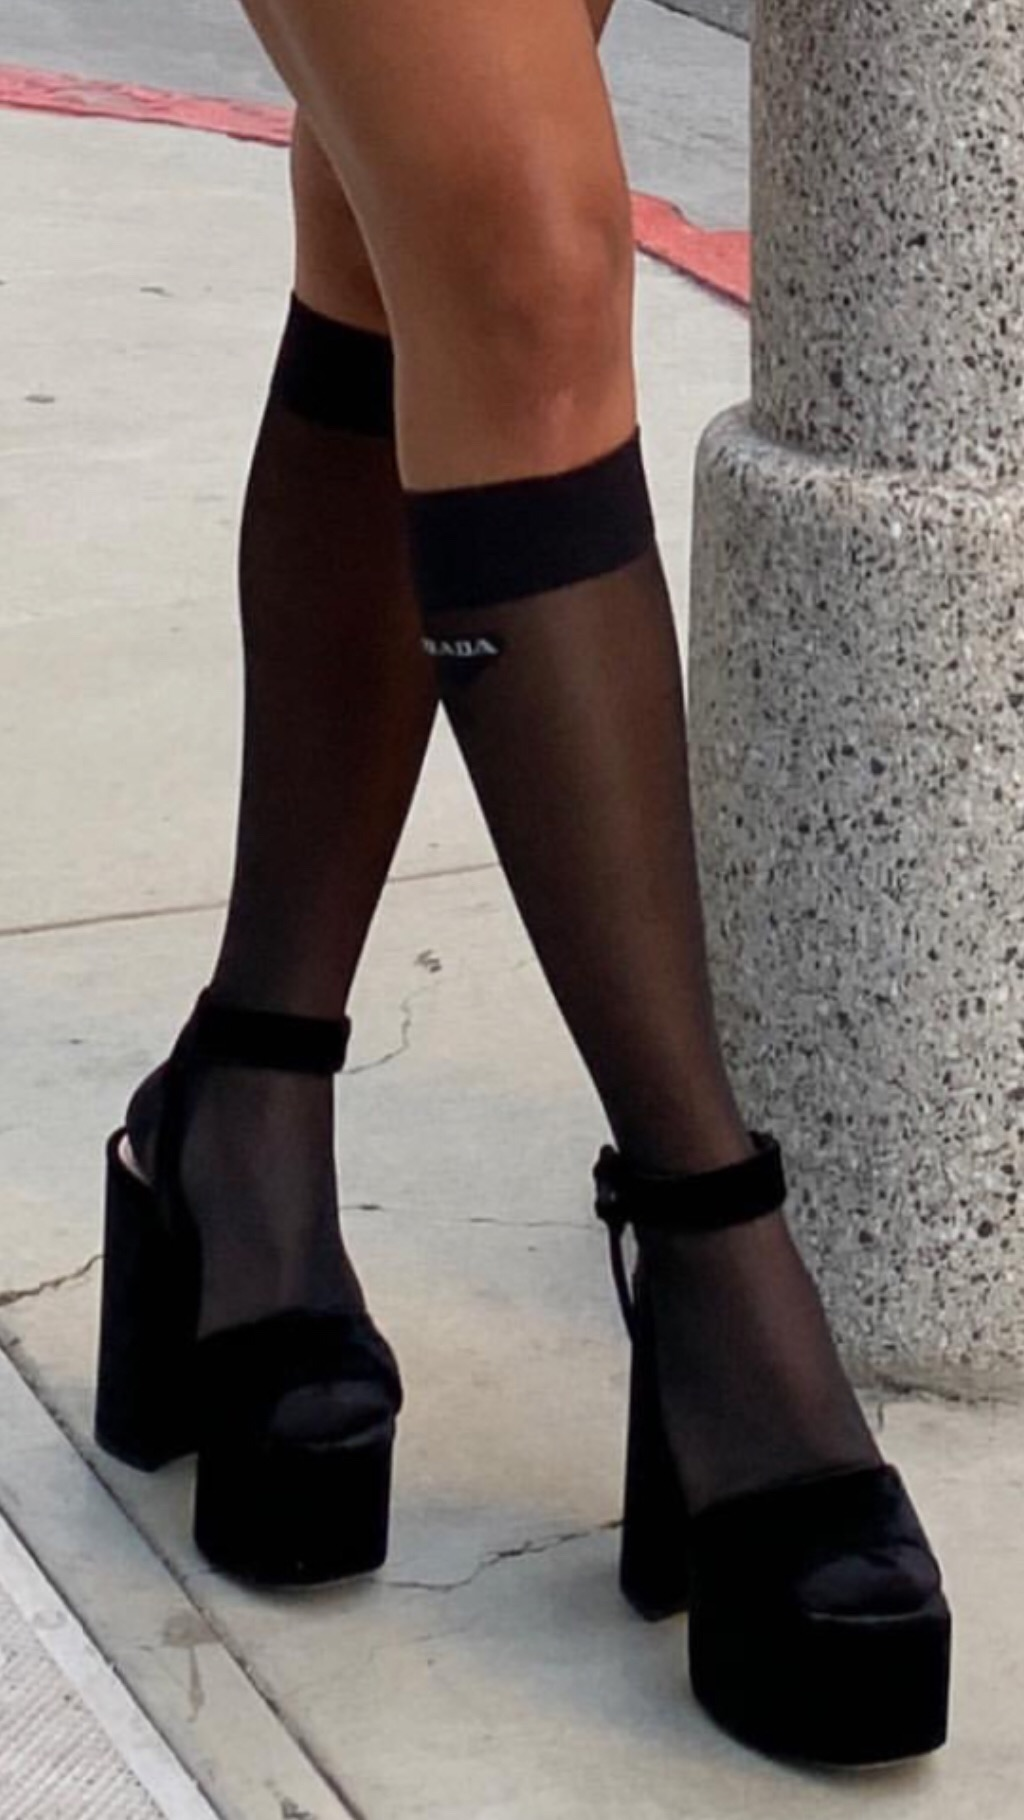 Nothing can compare to this photo of the Prada tights & Miu Miu platforms for the 'inpso of the week' but here we go.